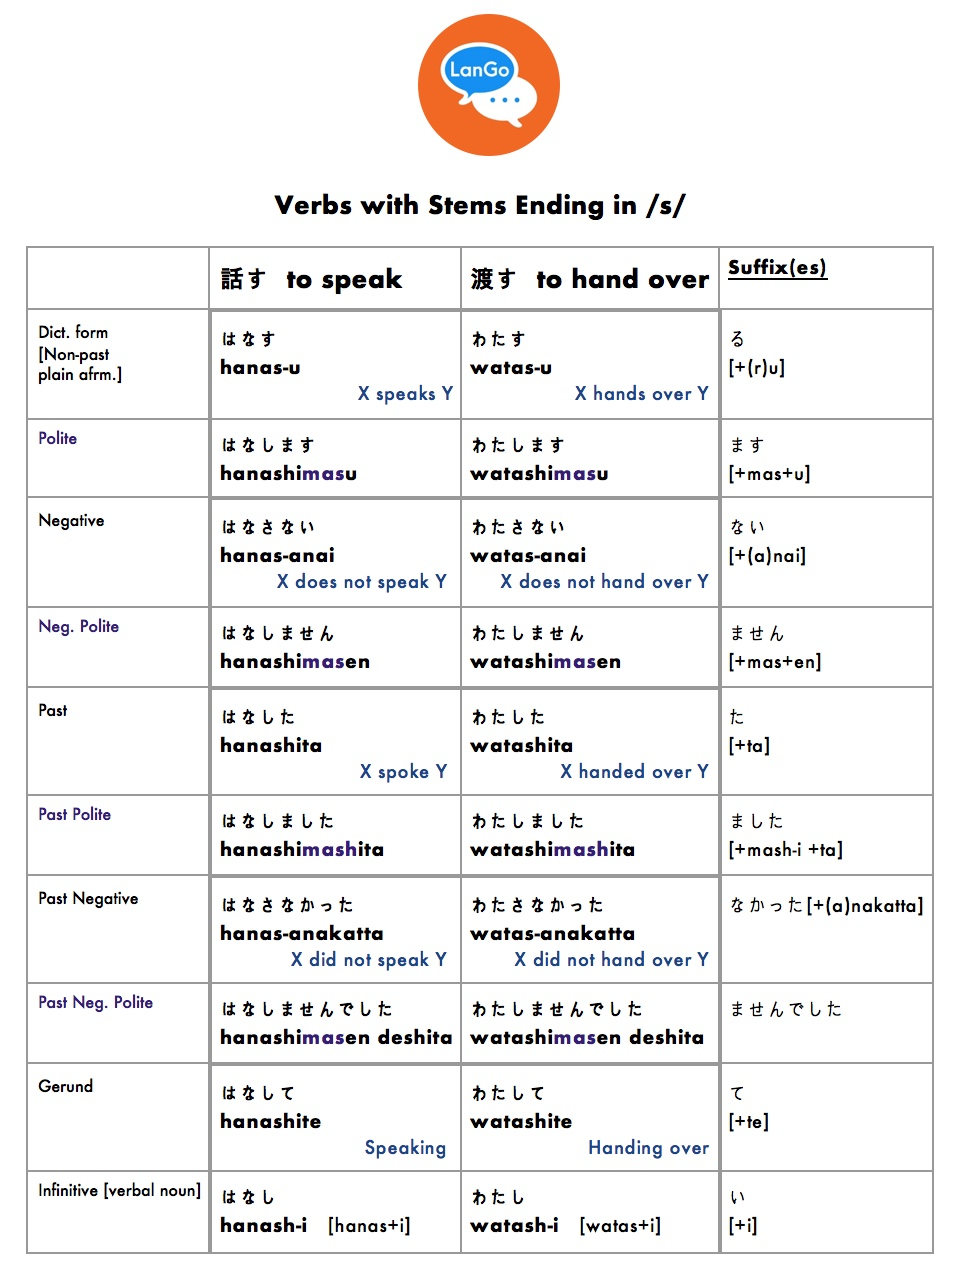 Table 5: Verbs with stems ending in /s/.